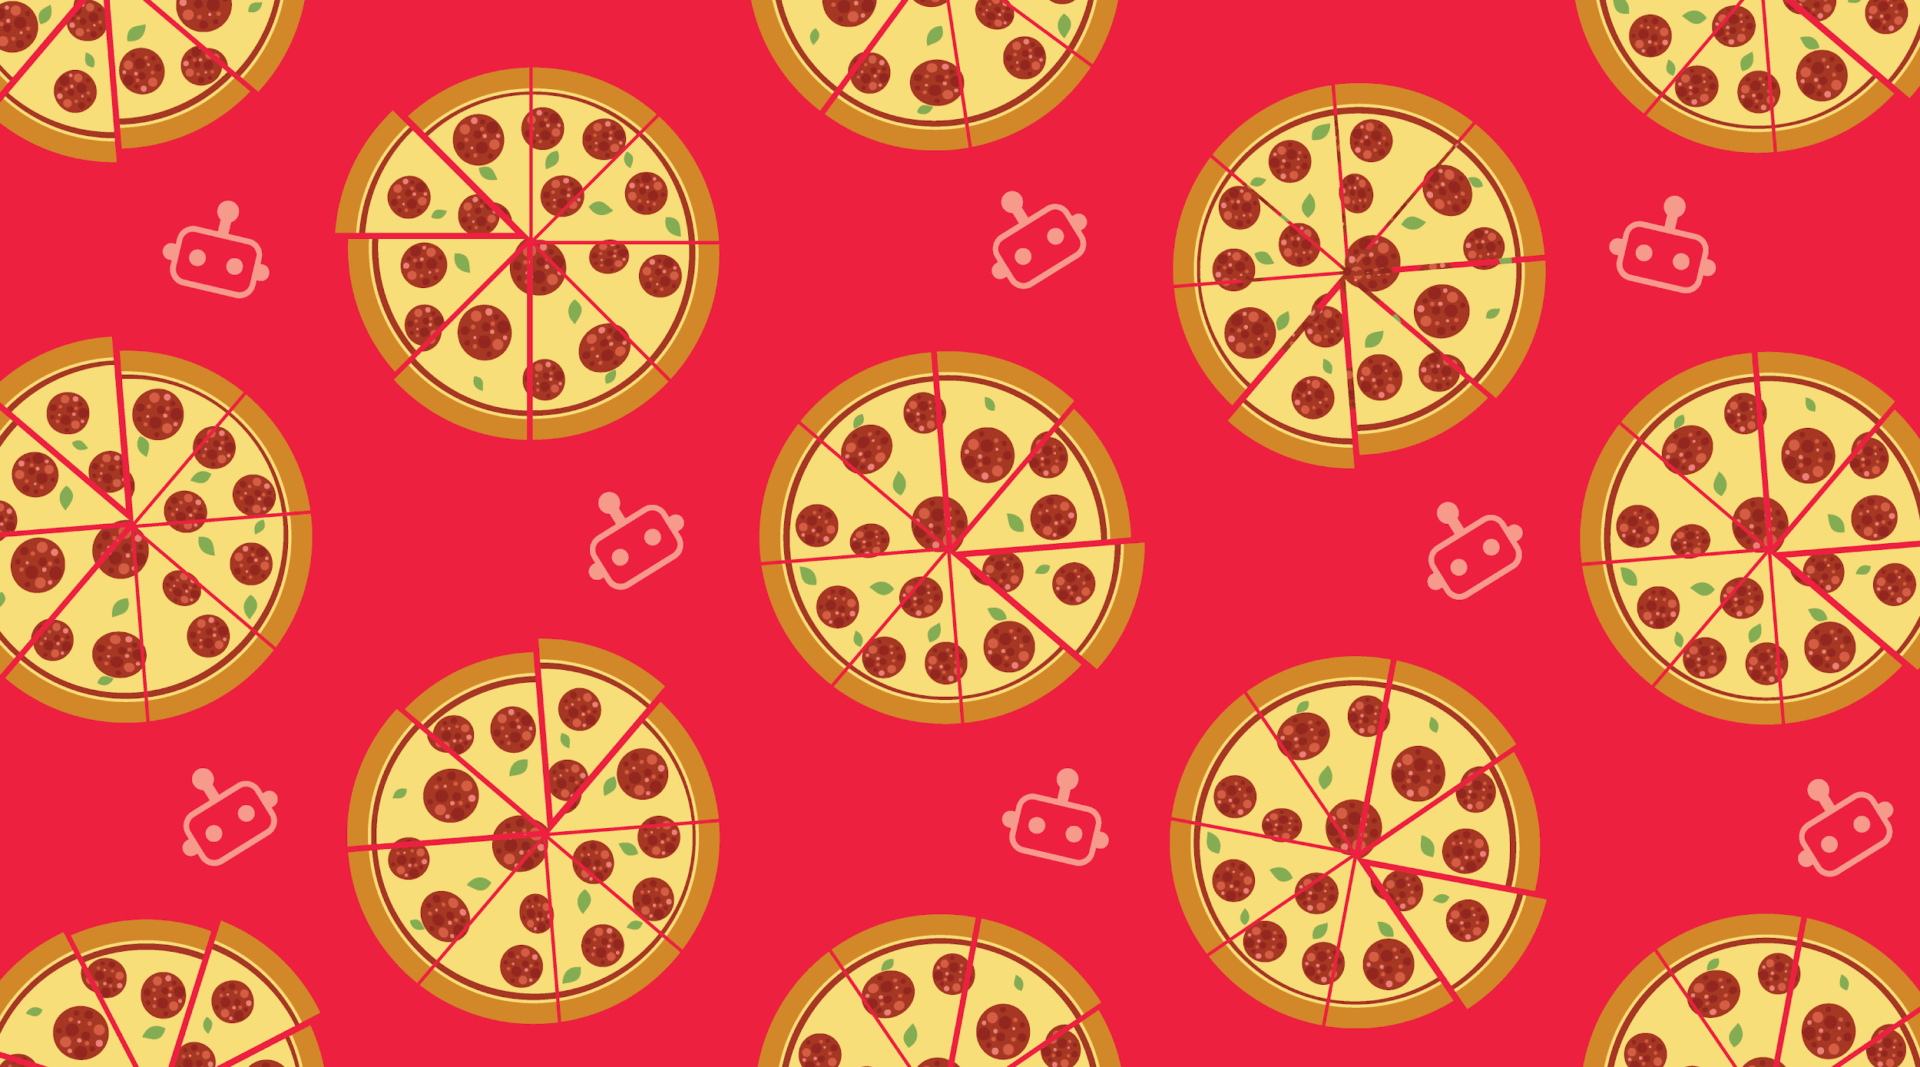 Hungry for Pizza? Deploy the Bots!